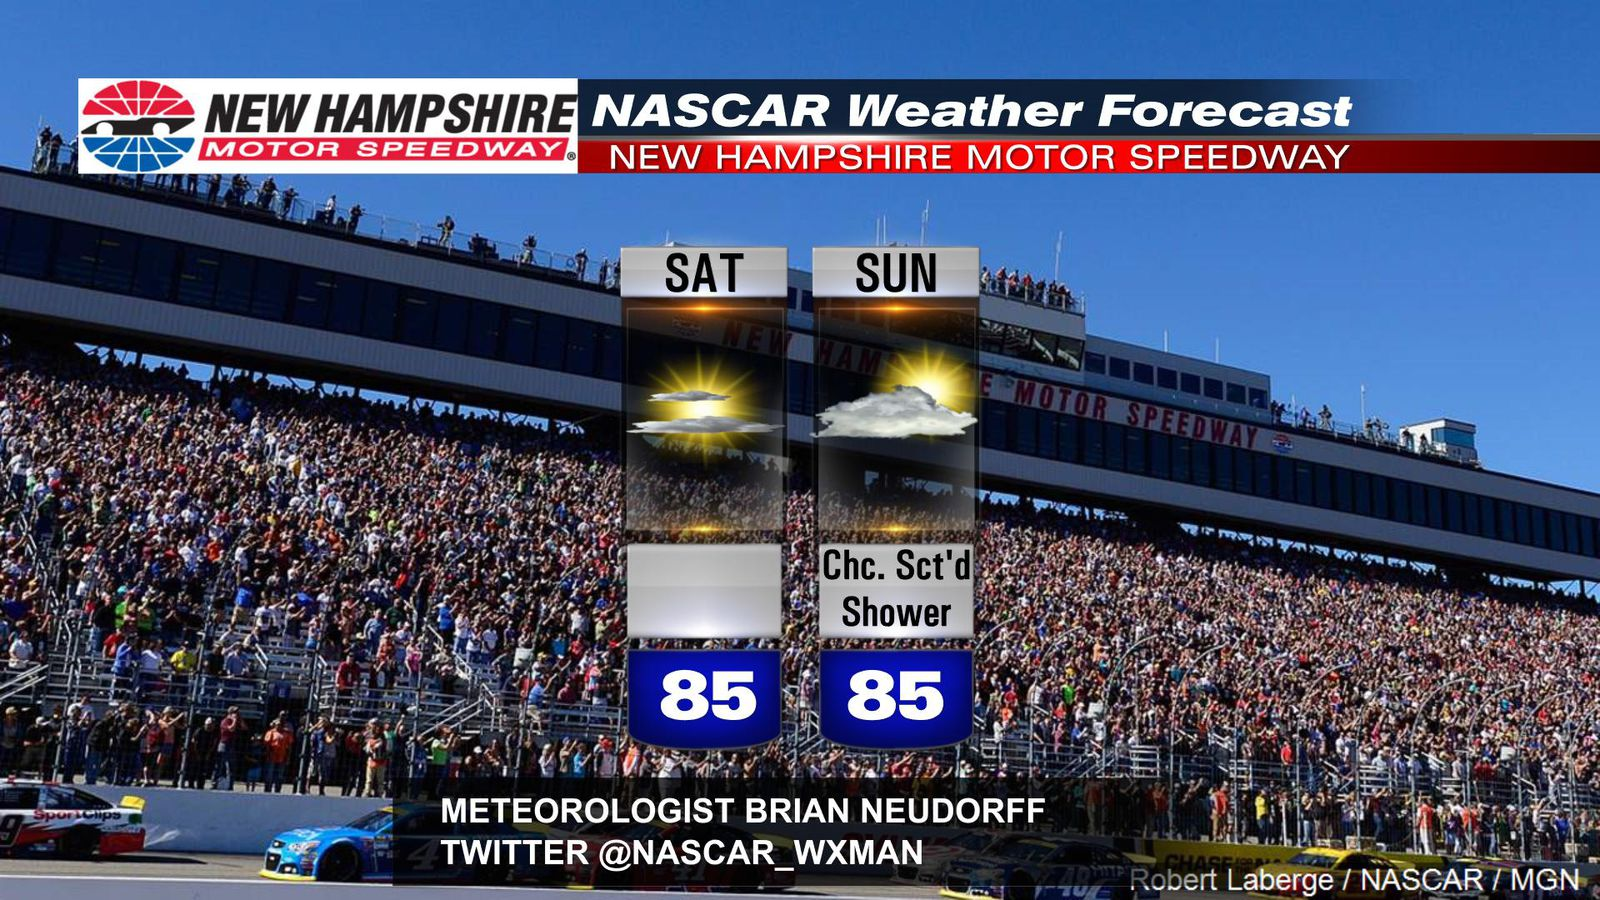 Changes To The Weekend Weather Forecast For Nascar At New